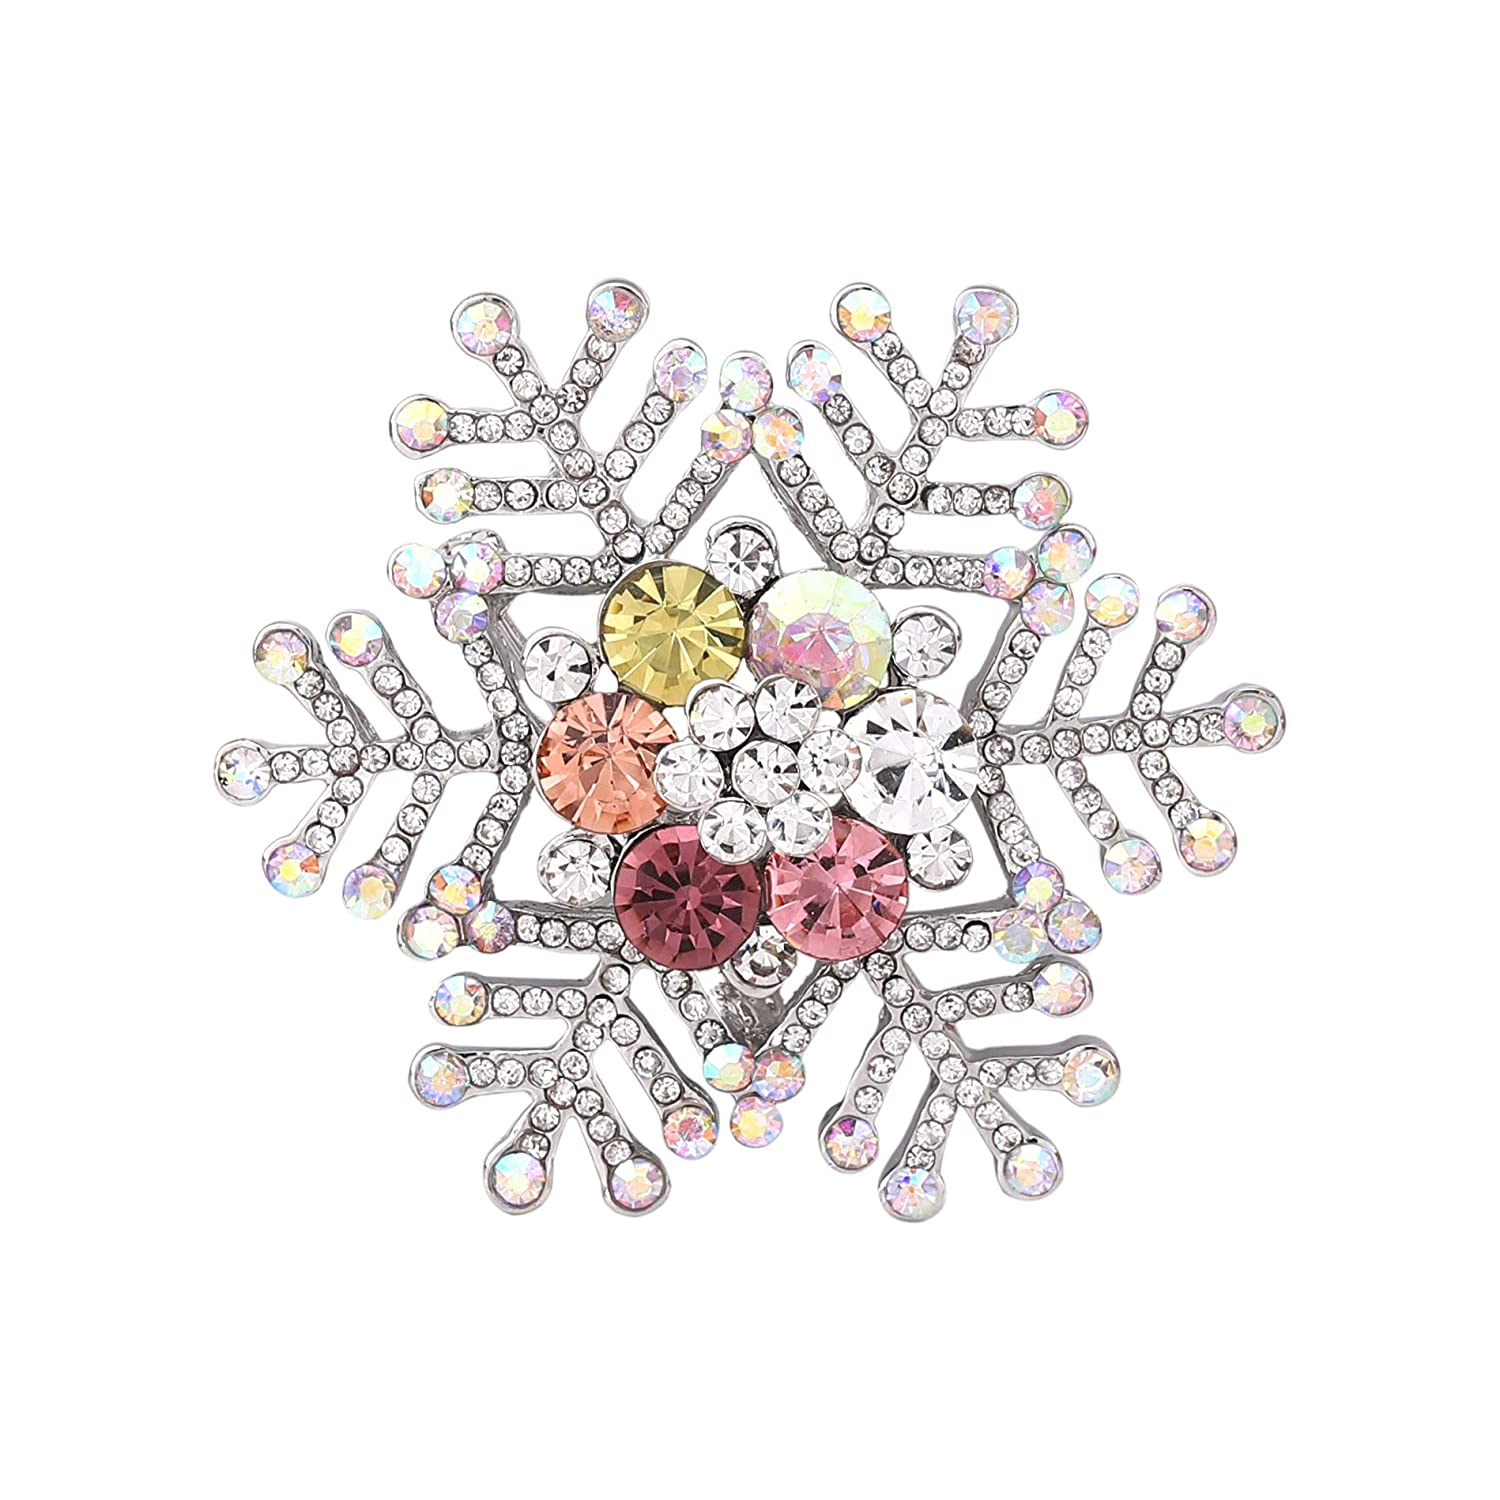 Seni Jewelry Christmas Brooch Pins Crystal Rhinestone Brooch Tree Wreaths Bow Snowflake Wedding Holiday Xmas Gift Jewelry